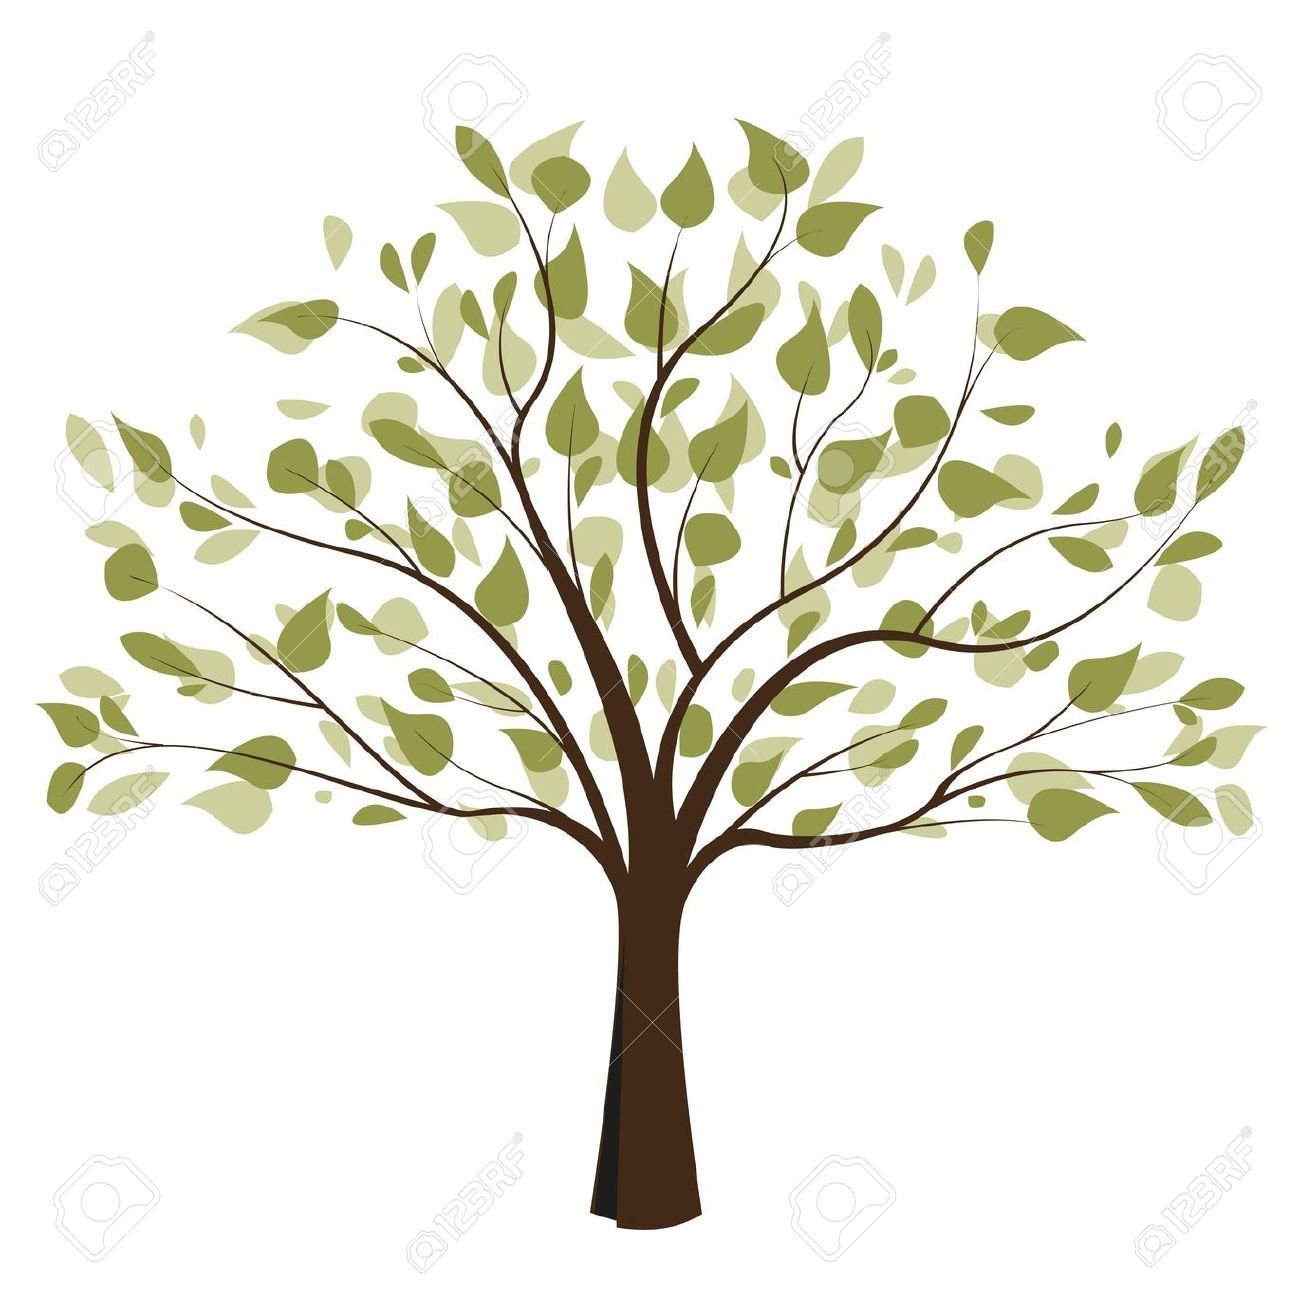 Life clipart. Tree of black and